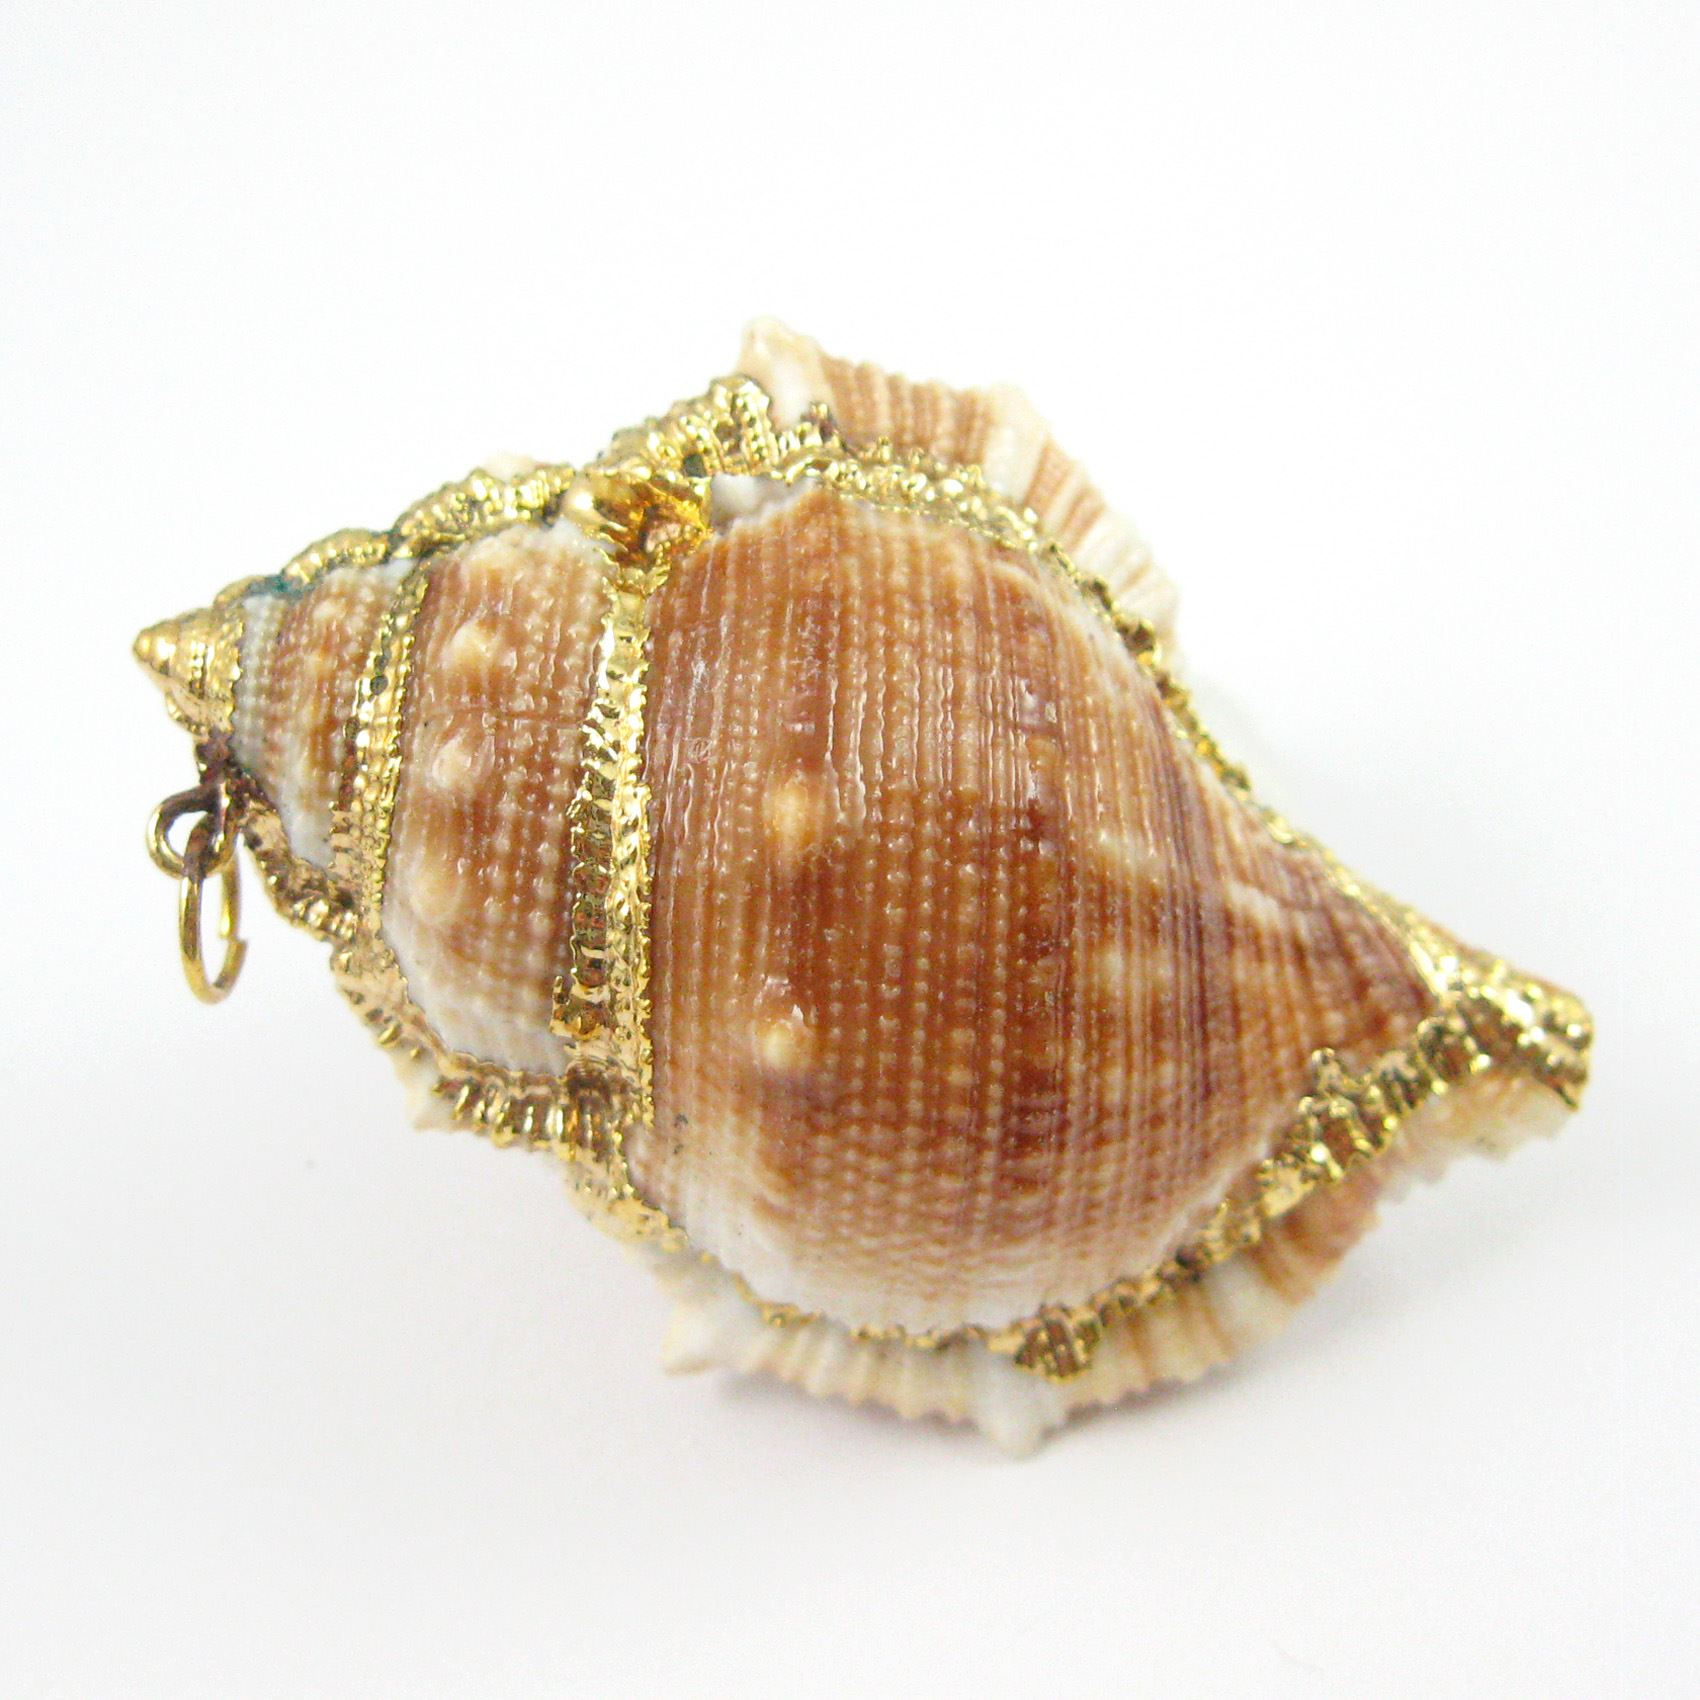 Nature Fighting Conch Shell Pendant, Large Necklace Pendant, Gold wrapped Pendant, Natural Shaded Conch Shell